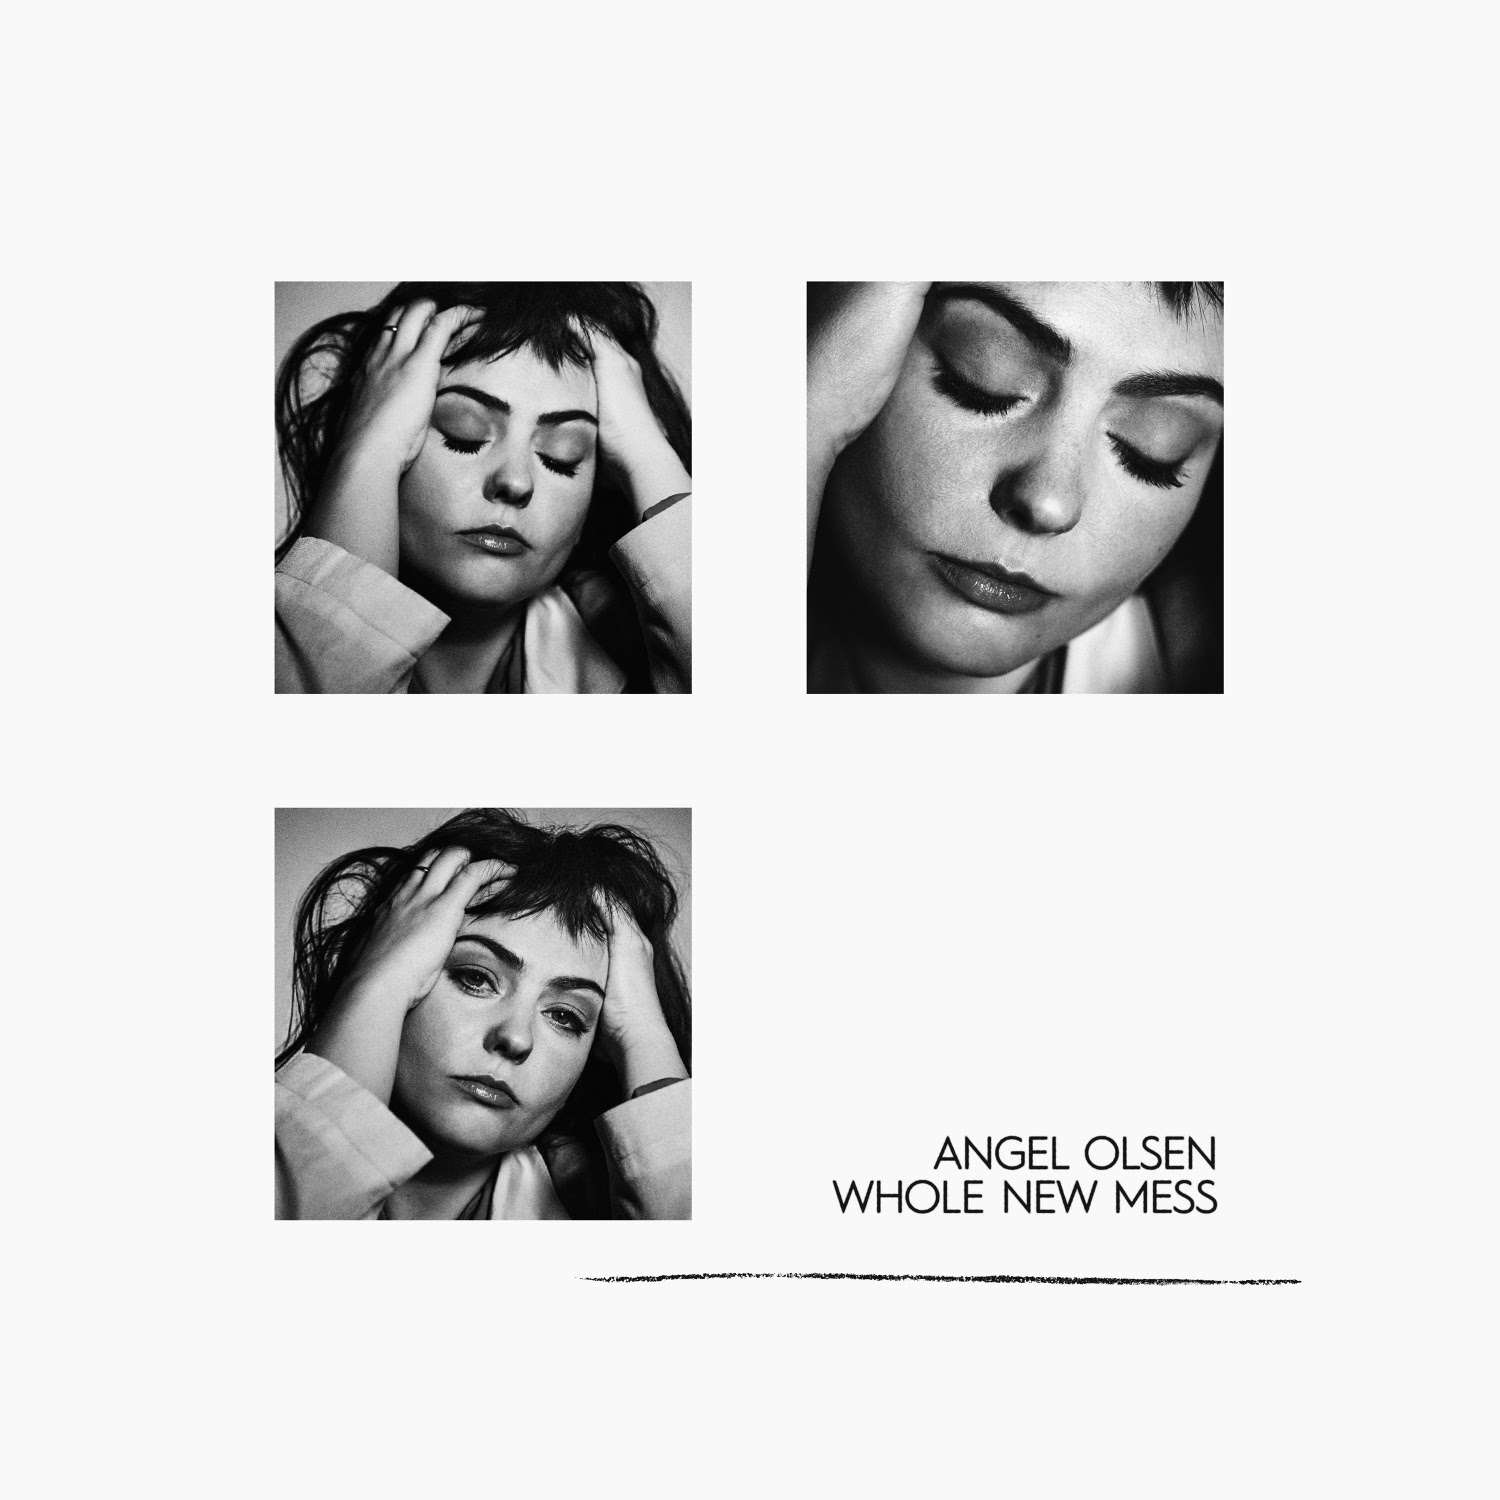 Angel Olsen, has announced that her new LP Whole New Mess, will arrive on August 28th via Jagjaguwar. The full-length is described as super intimate